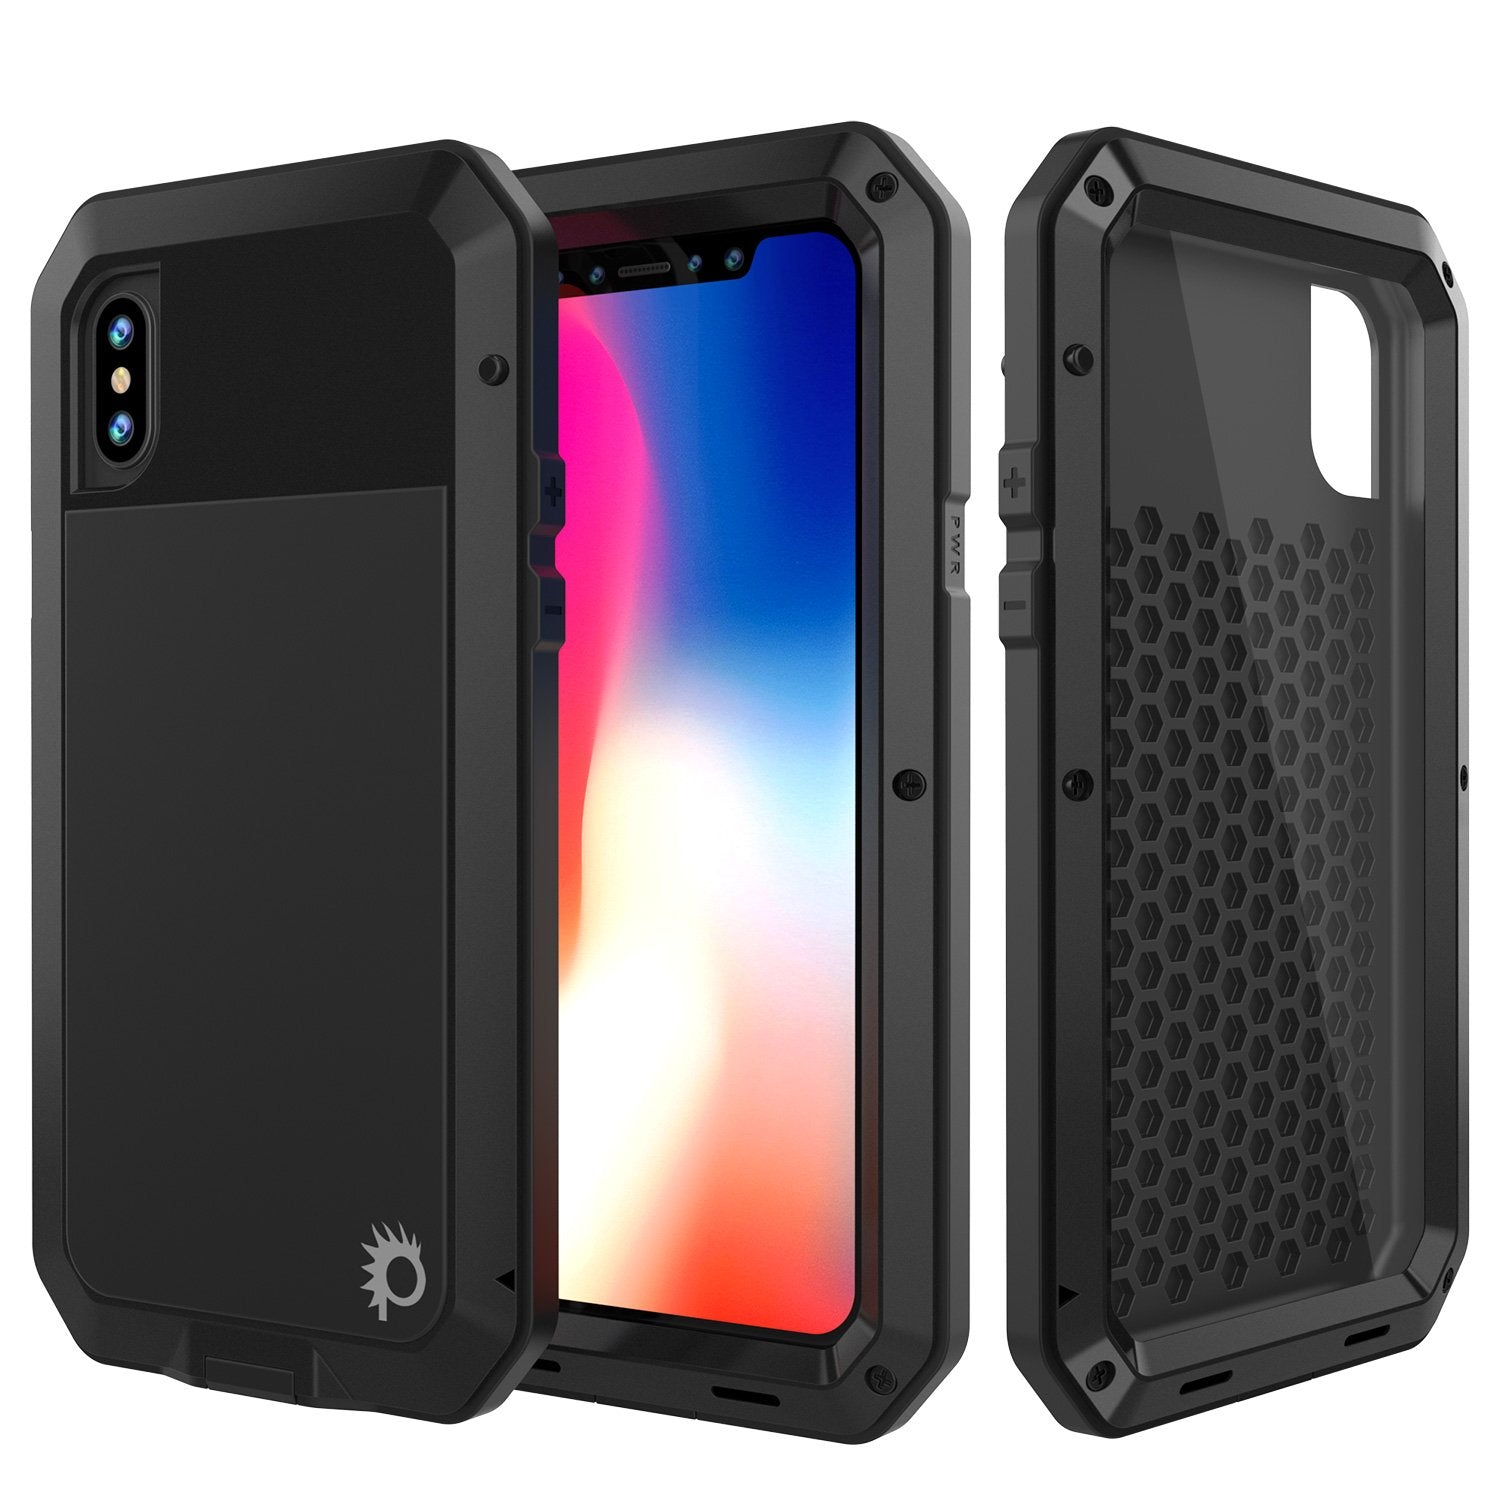 iPhone X Metal Case Heavy Duty Military Grade Rugged Armor Case, Black